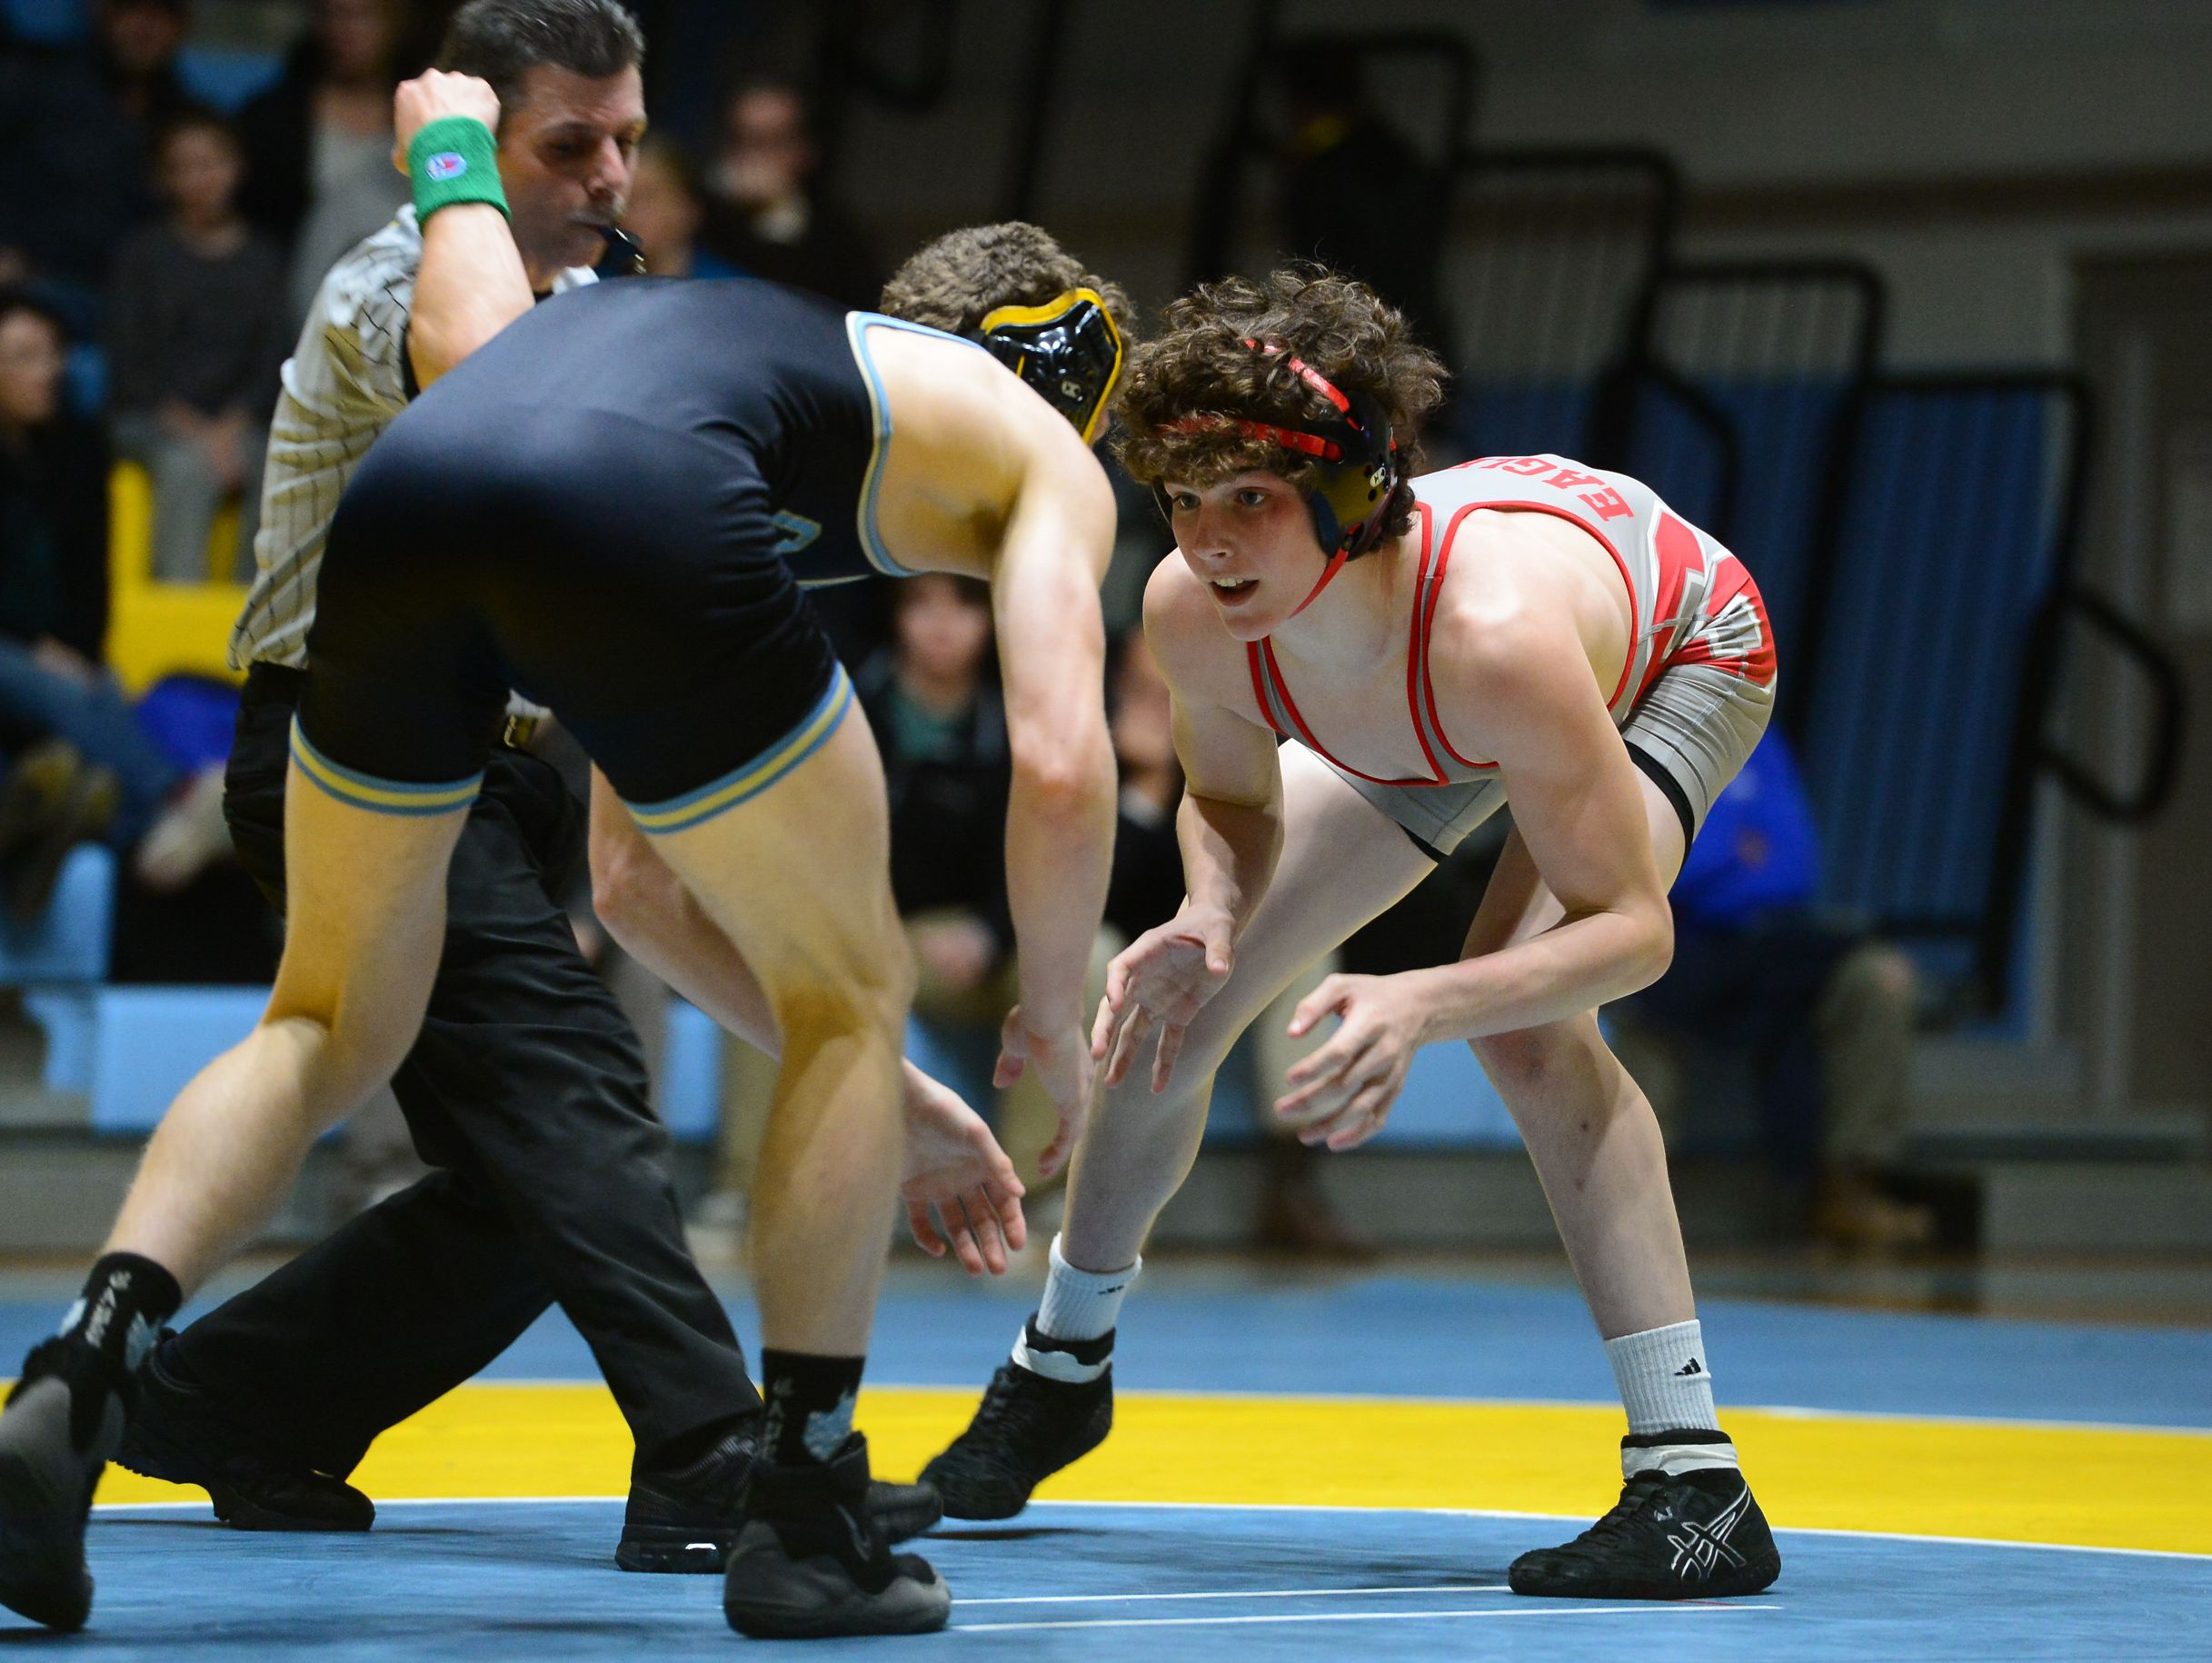 Cape's Vinnie Diego matches up against Smyrna's JT Davis during the 138lb match up at Cape Henlopen High School on Wednesday, Jan. 18, 2017.